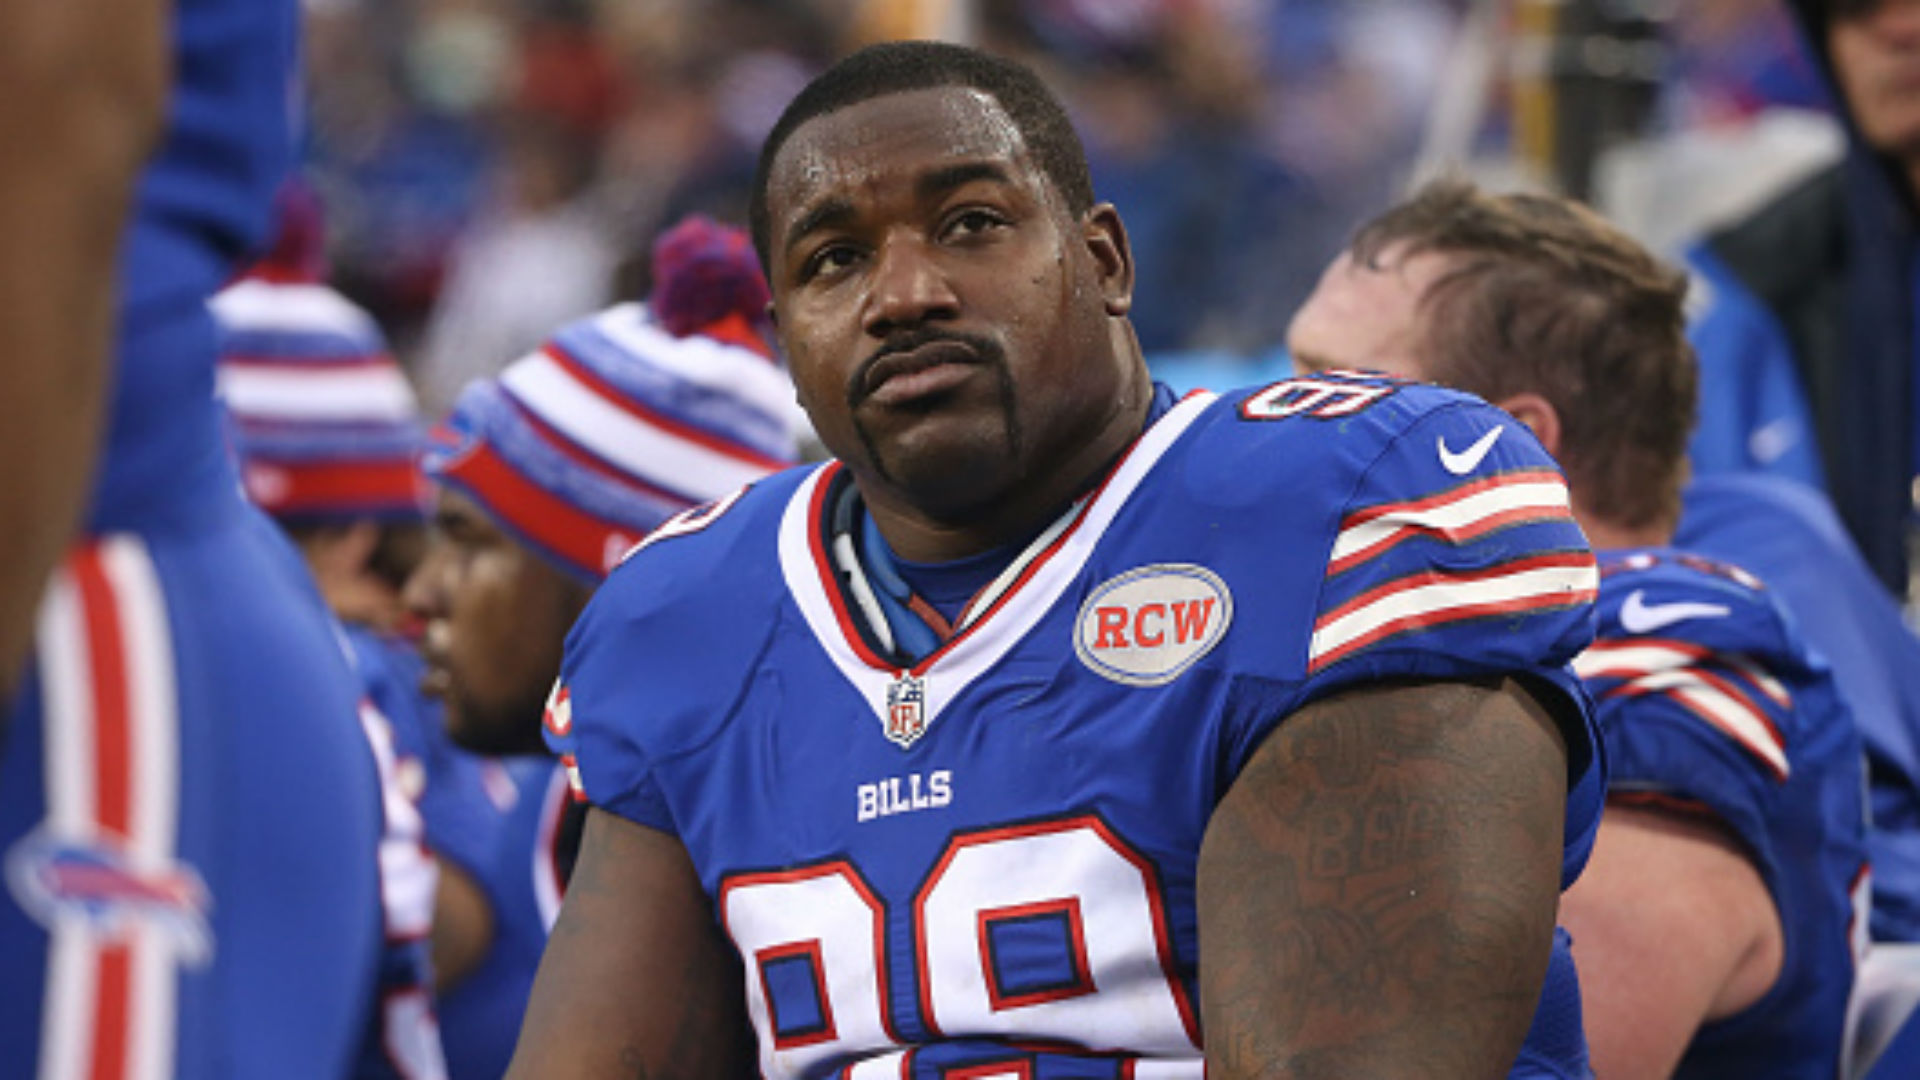 NFL trade deadline Bills send DT Marcell Dareus to Jaguars